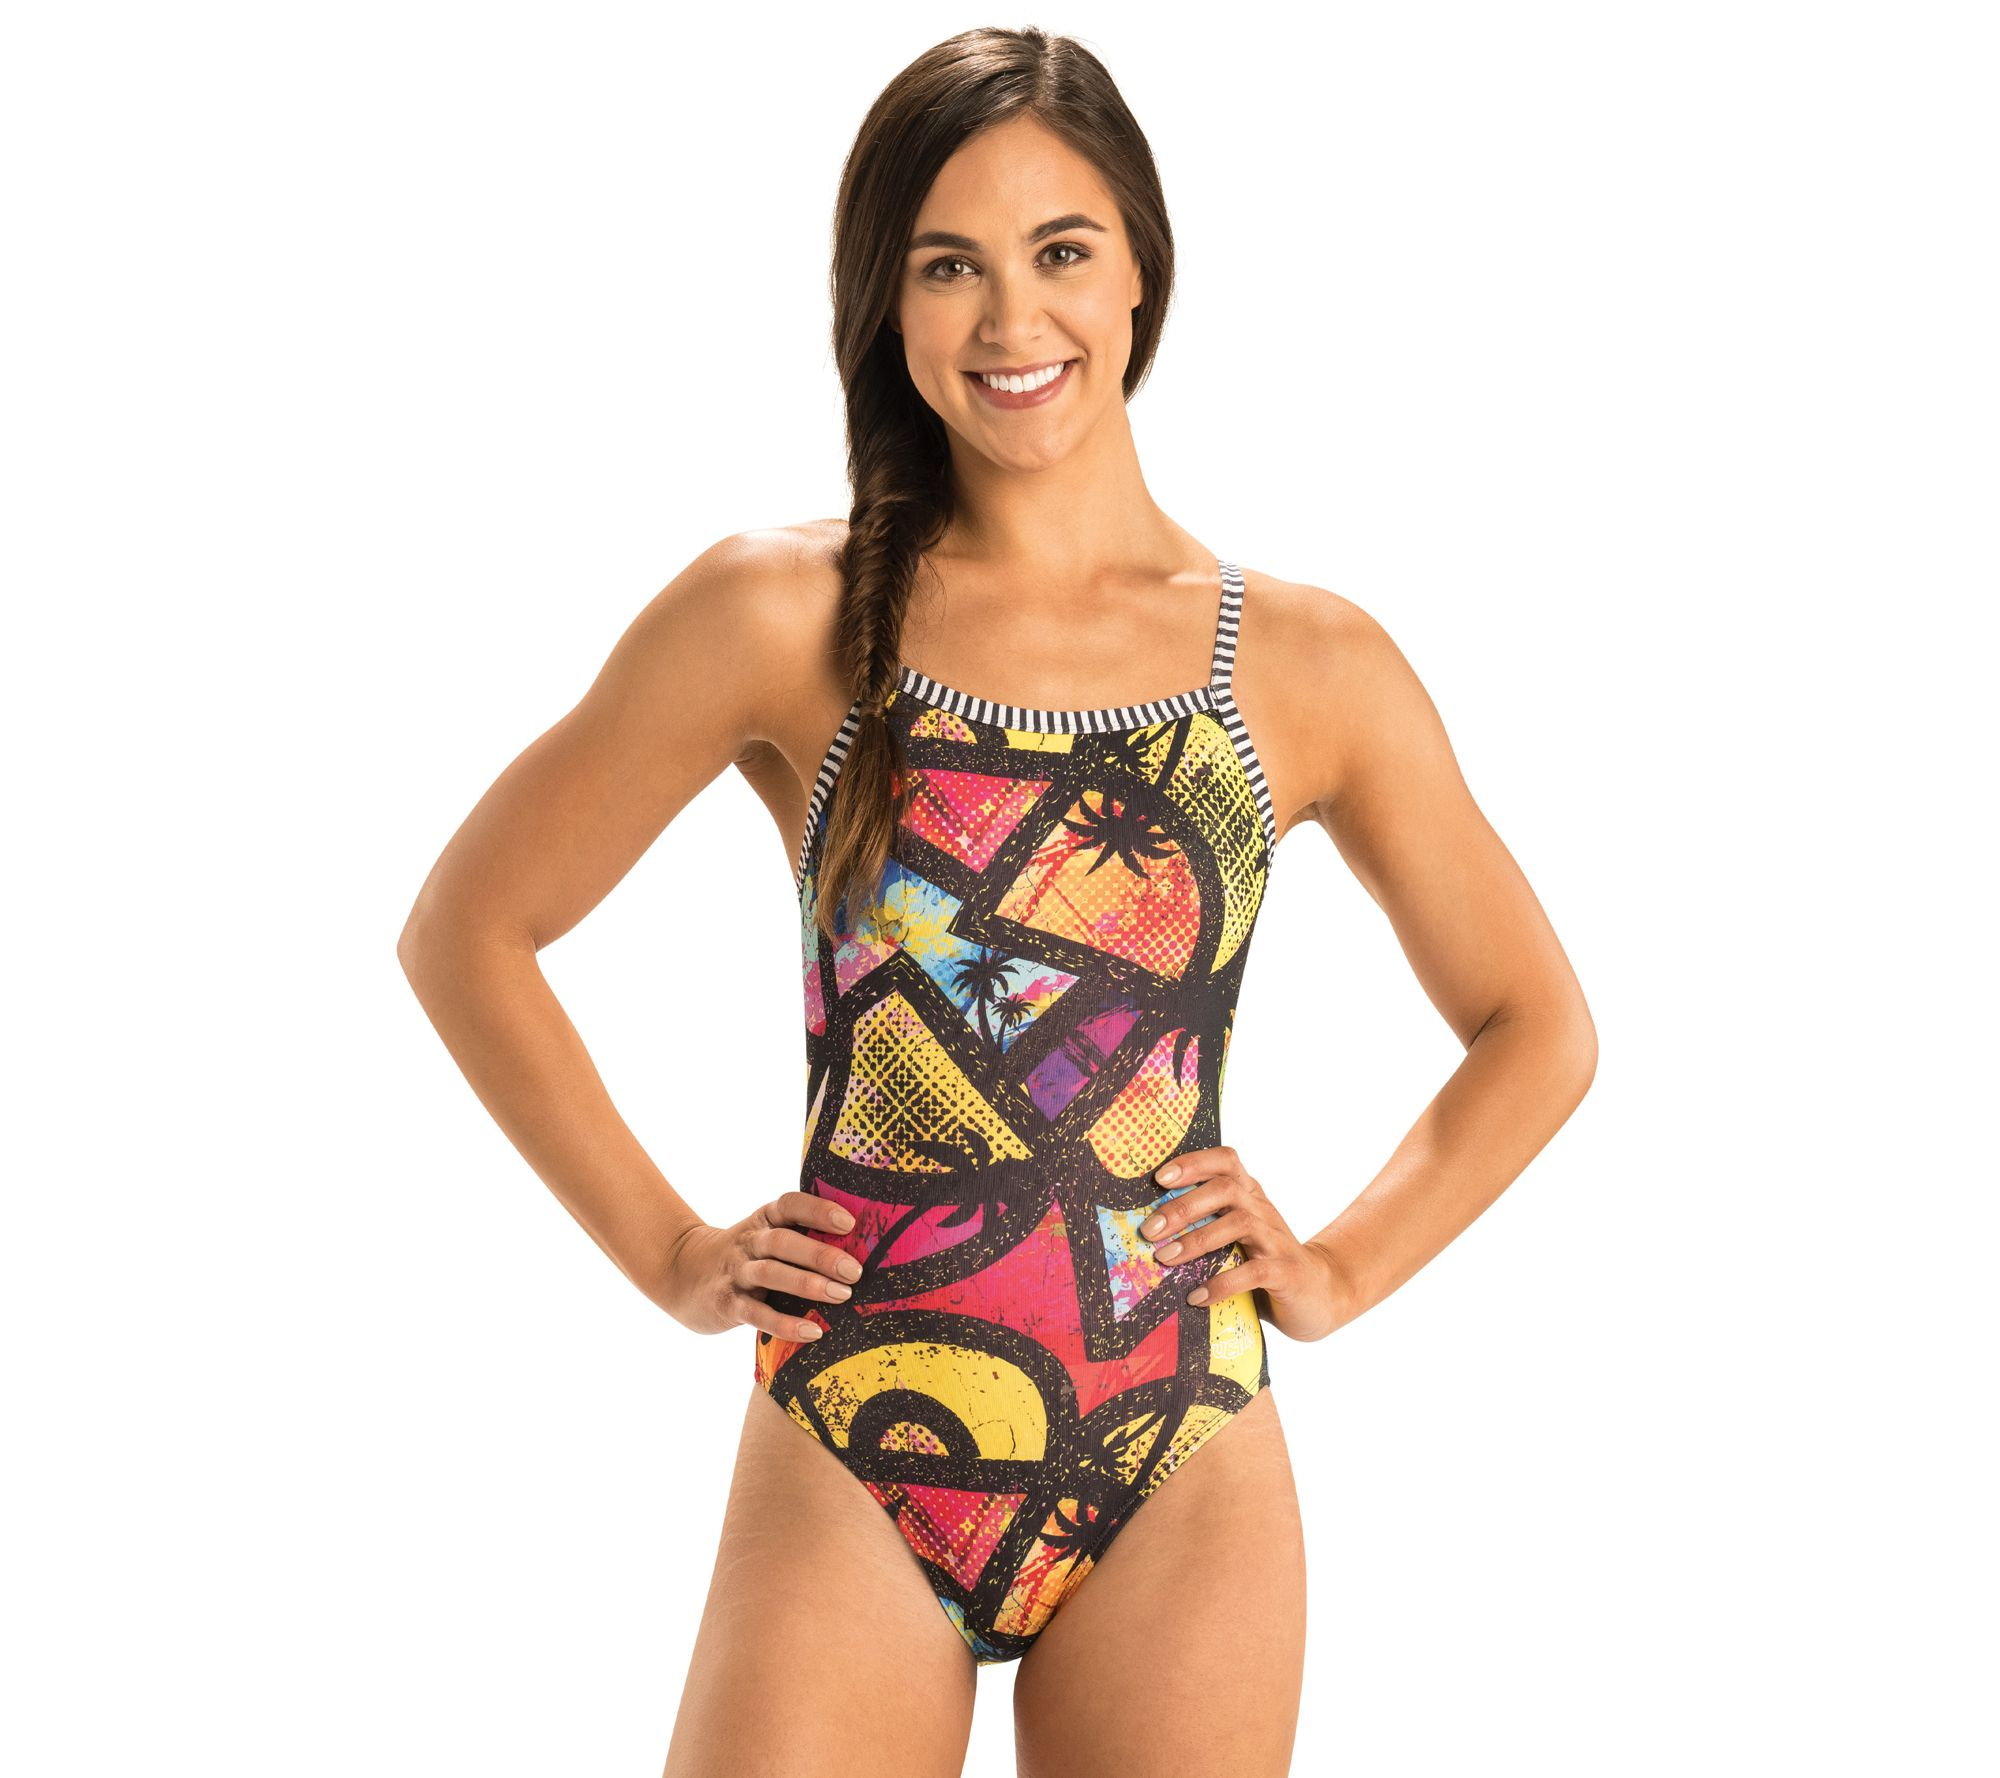 b0d431f15eb39 Dolfin Women's Uglies V-2 Back Printed One-Piece Swimsuit — QVC.com